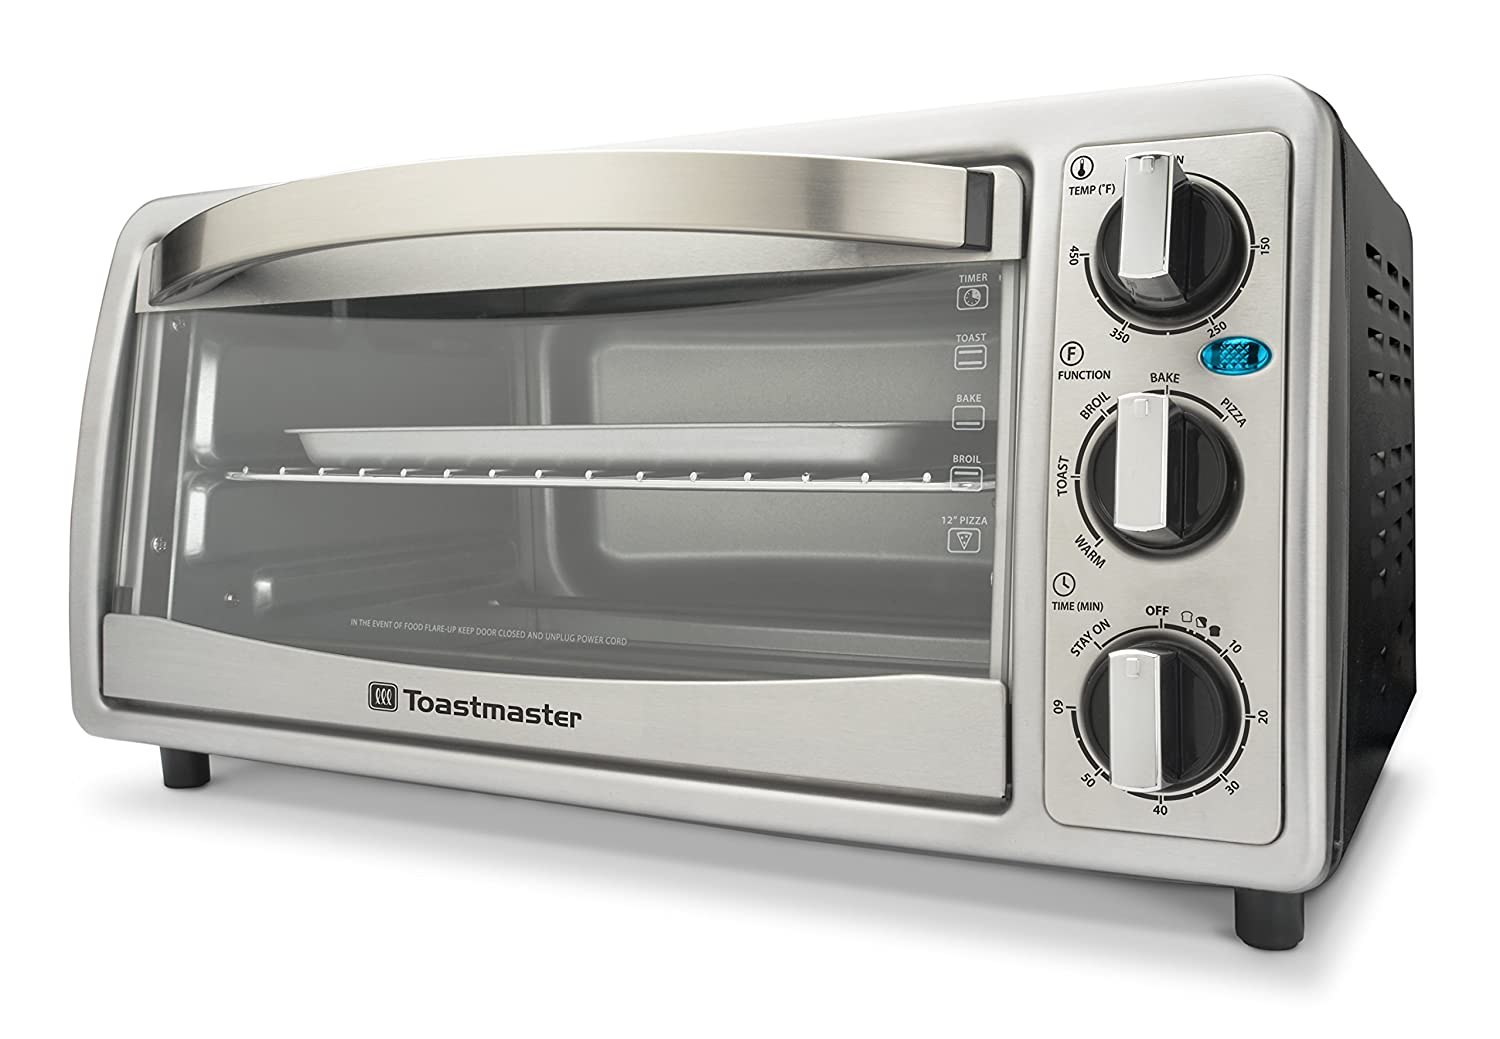 Toastmaster TM-183TR, 6-Slice Toaster Oven, Silver